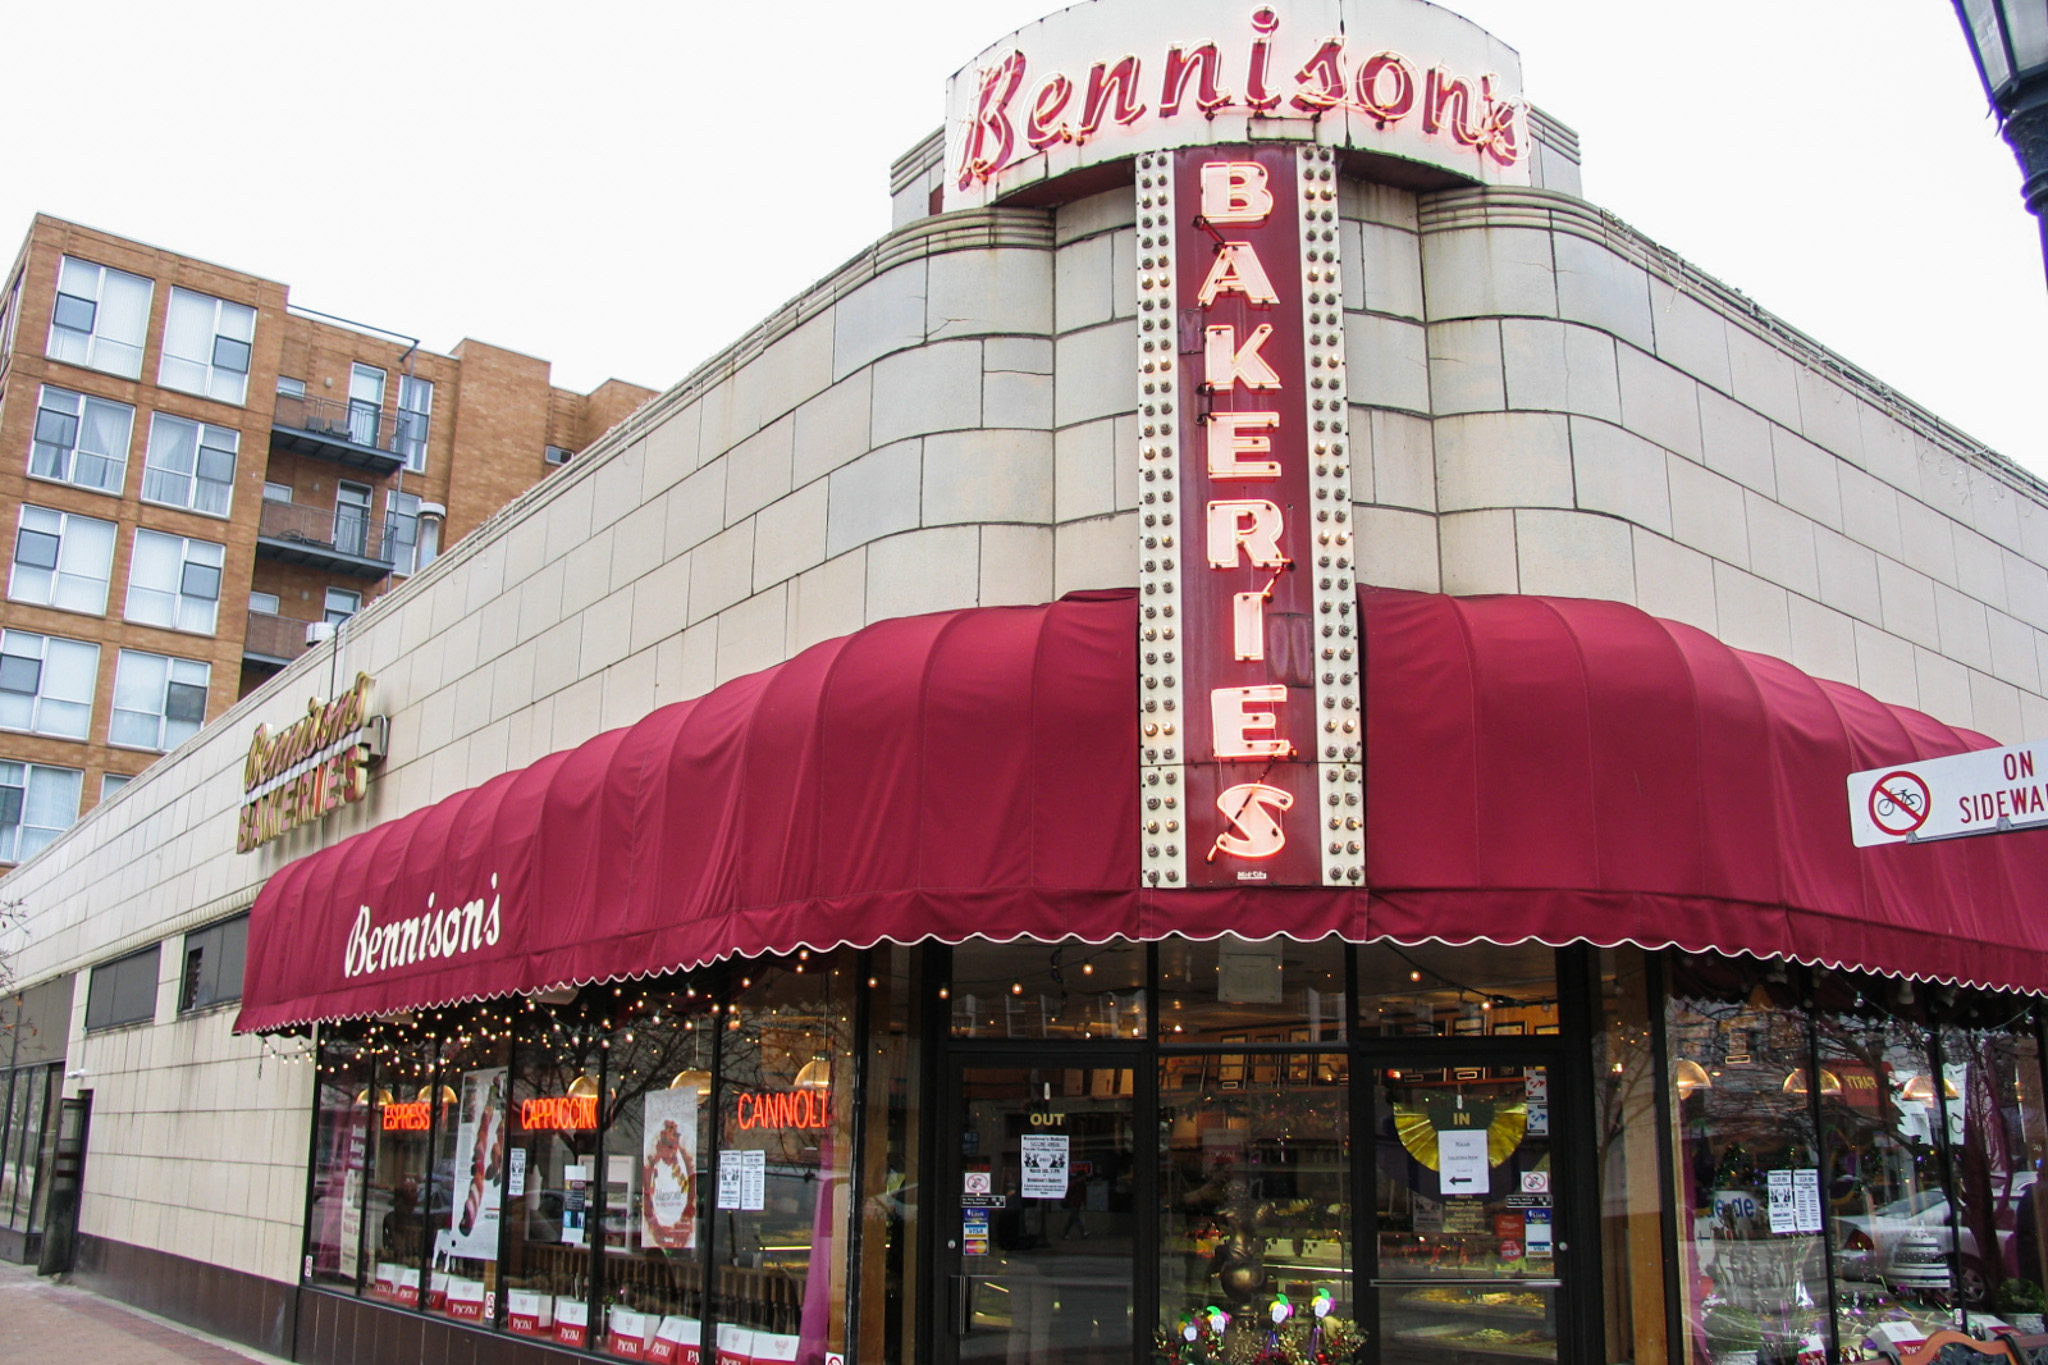 Bennison's Bakery, bakery, sweets, cakes, chi_fd_bennisonsbakery_1014